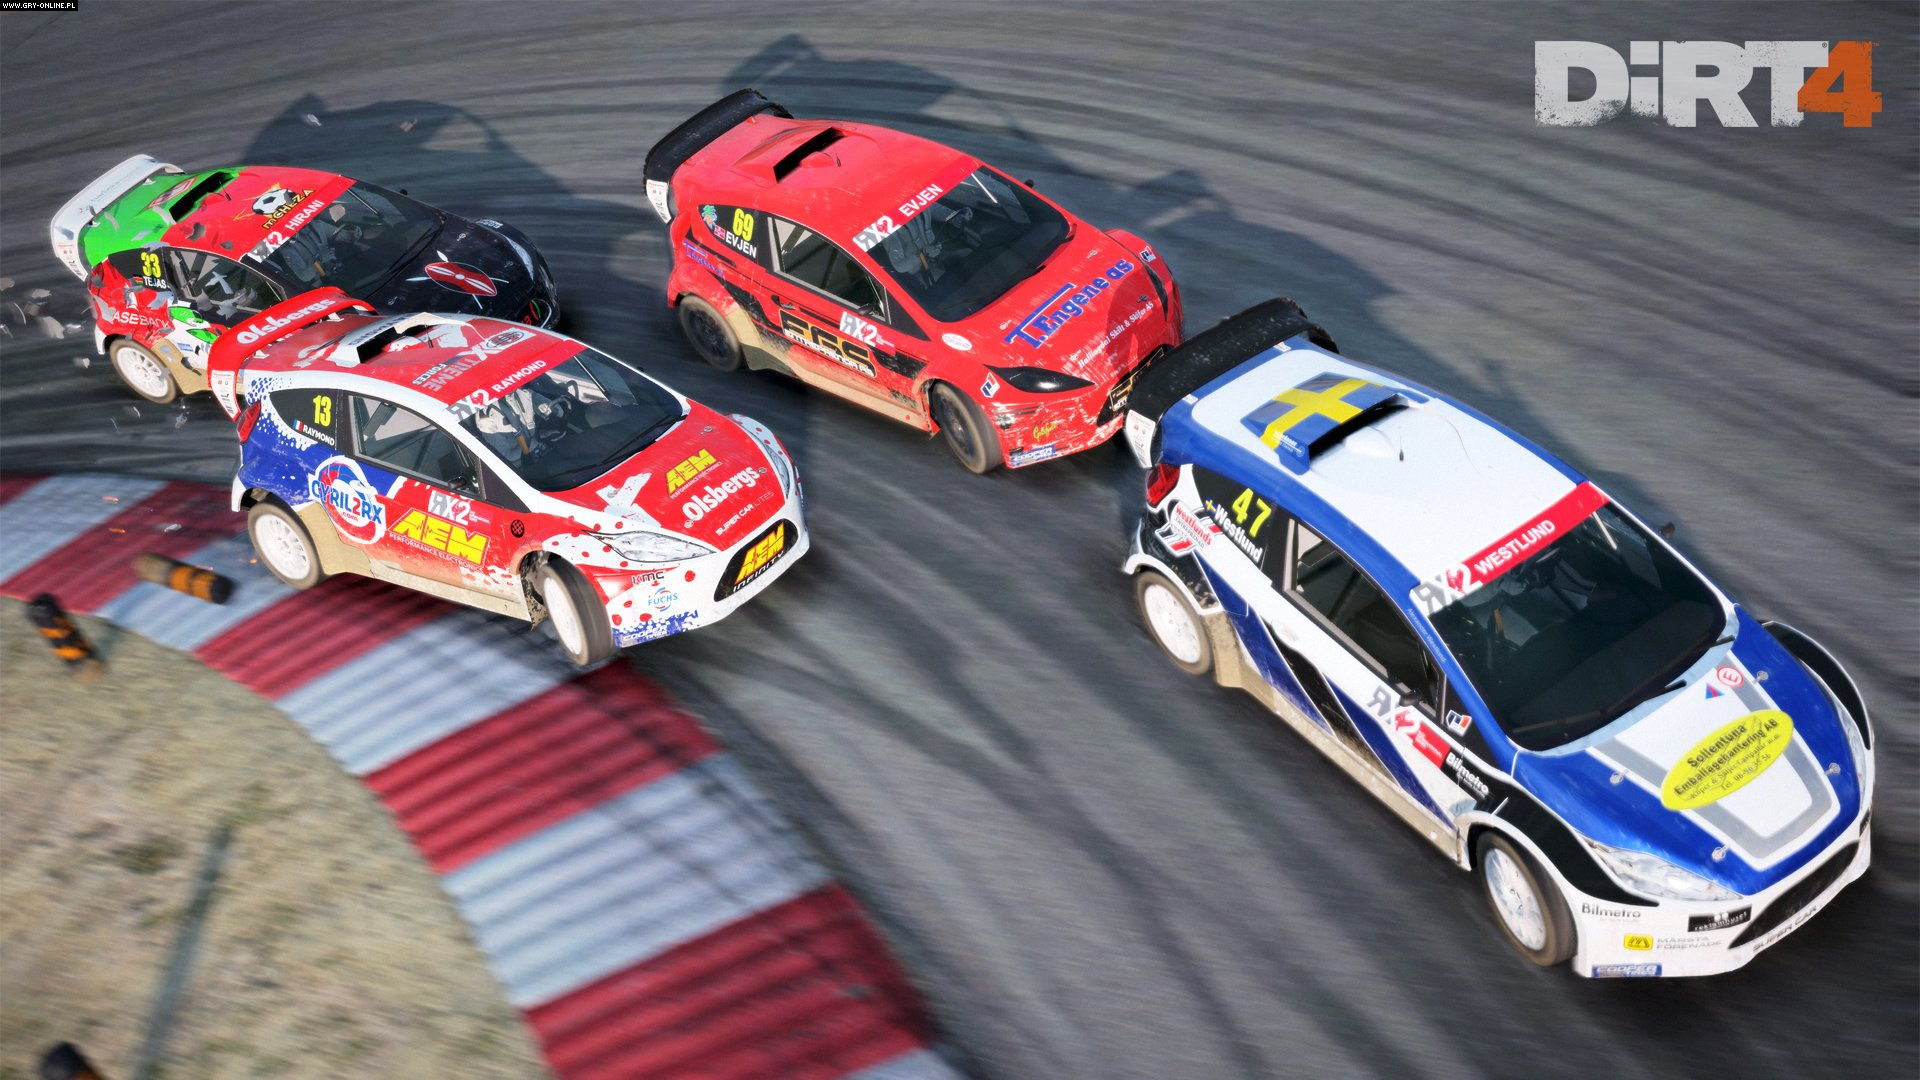 DiRT 4 PC, PS4, XONE Games Image 53/66, Codemasters Software